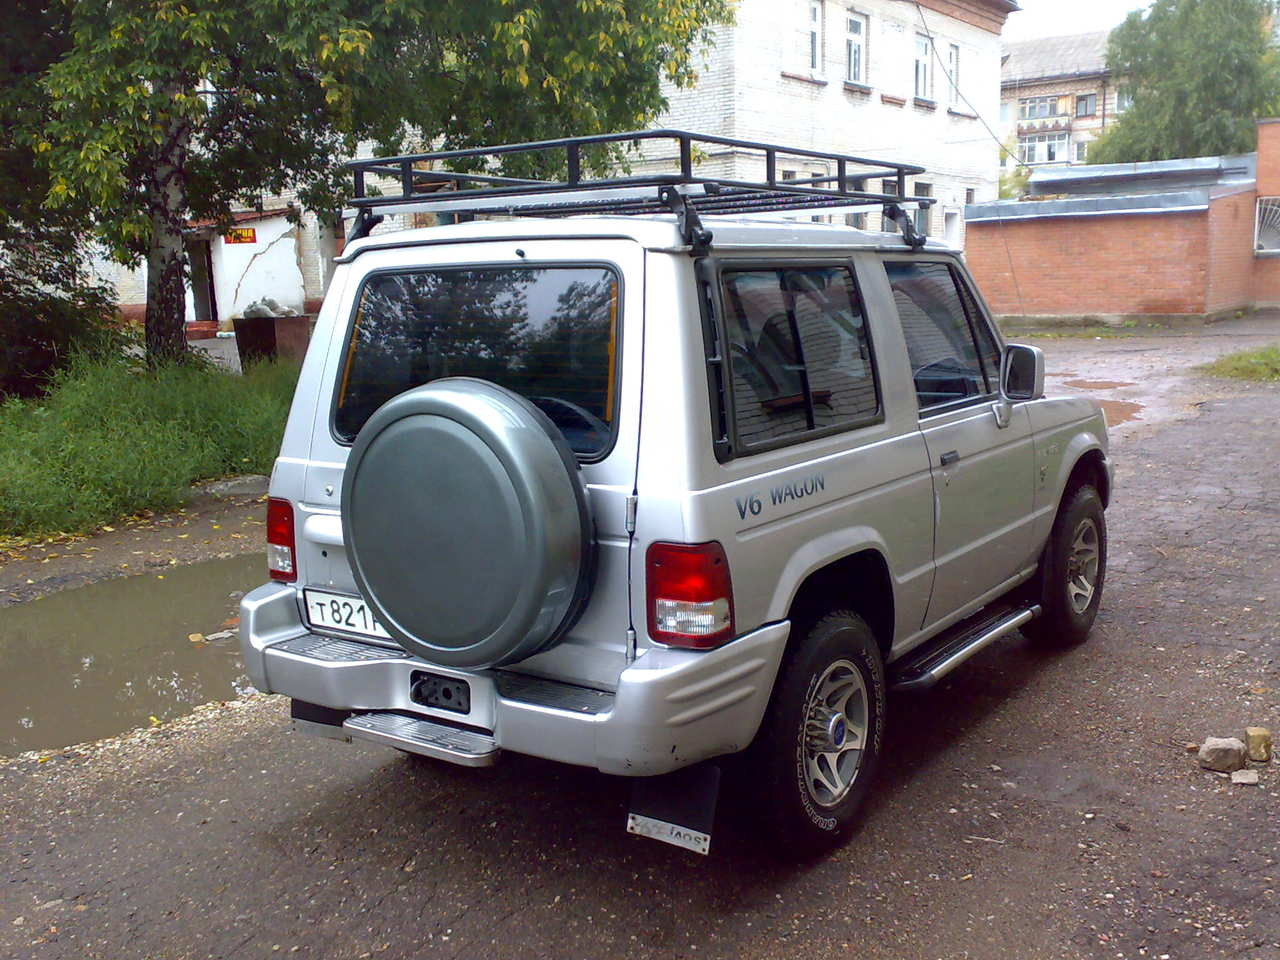 used 1998 hyundai galloper photos  3000cc   gasoline hyundai galloper parts manual hyundai galloper owners manual pdf